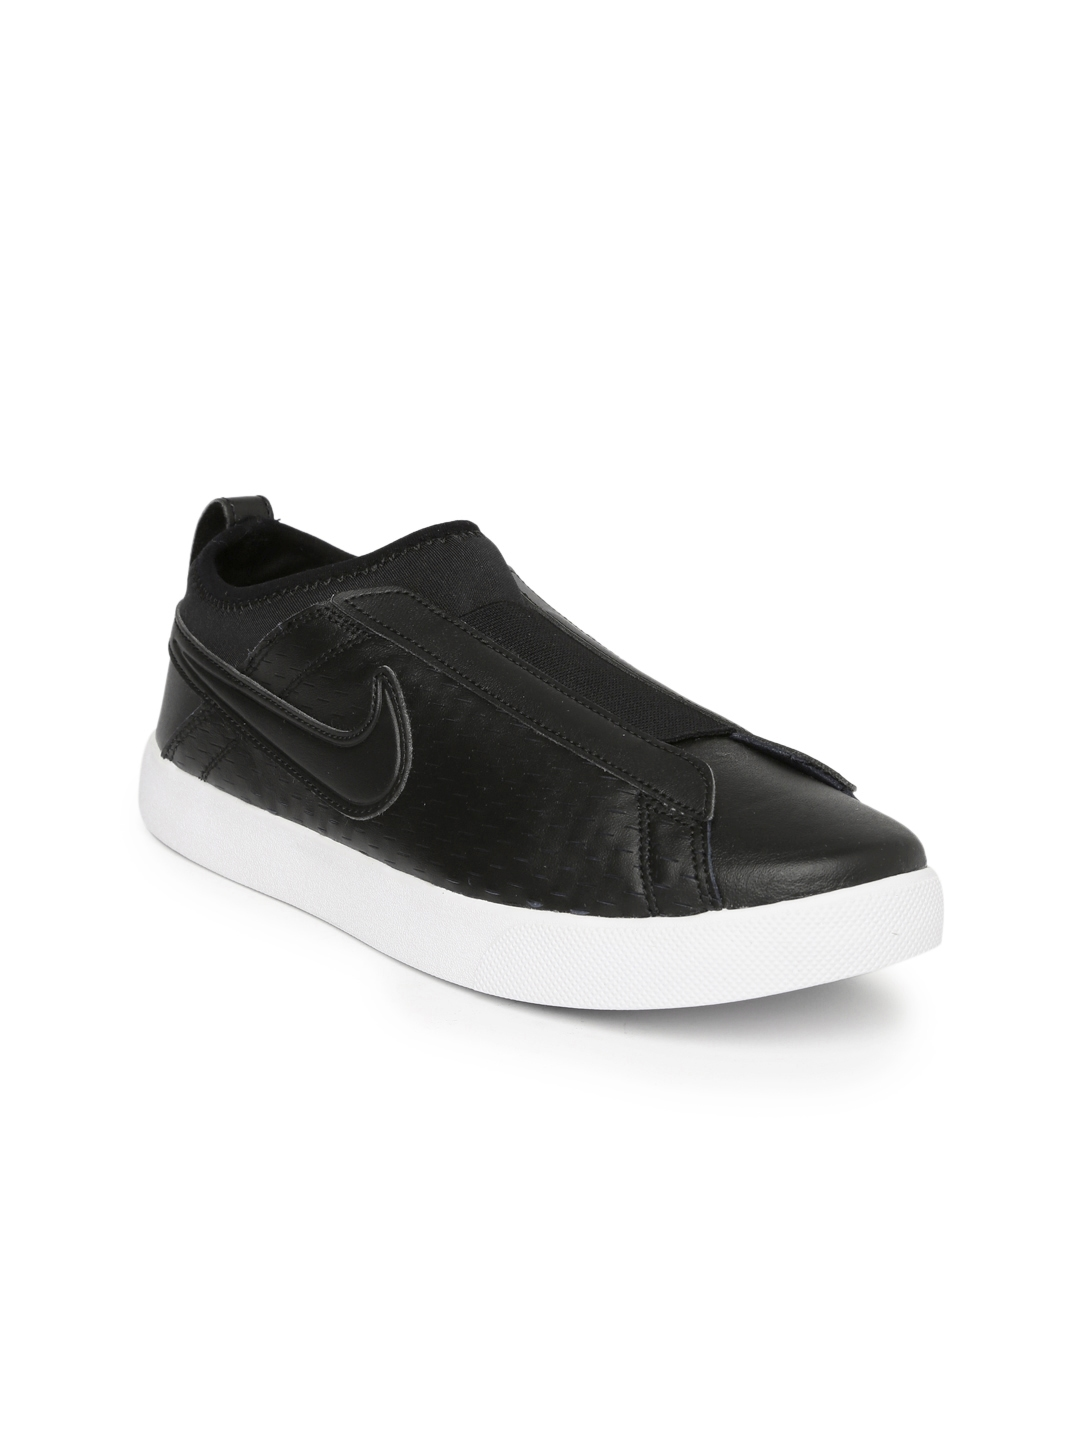 3aab4330008 Buy Nike Women Black Leather Racquette 17 Slip On Sneakers - Casual ...